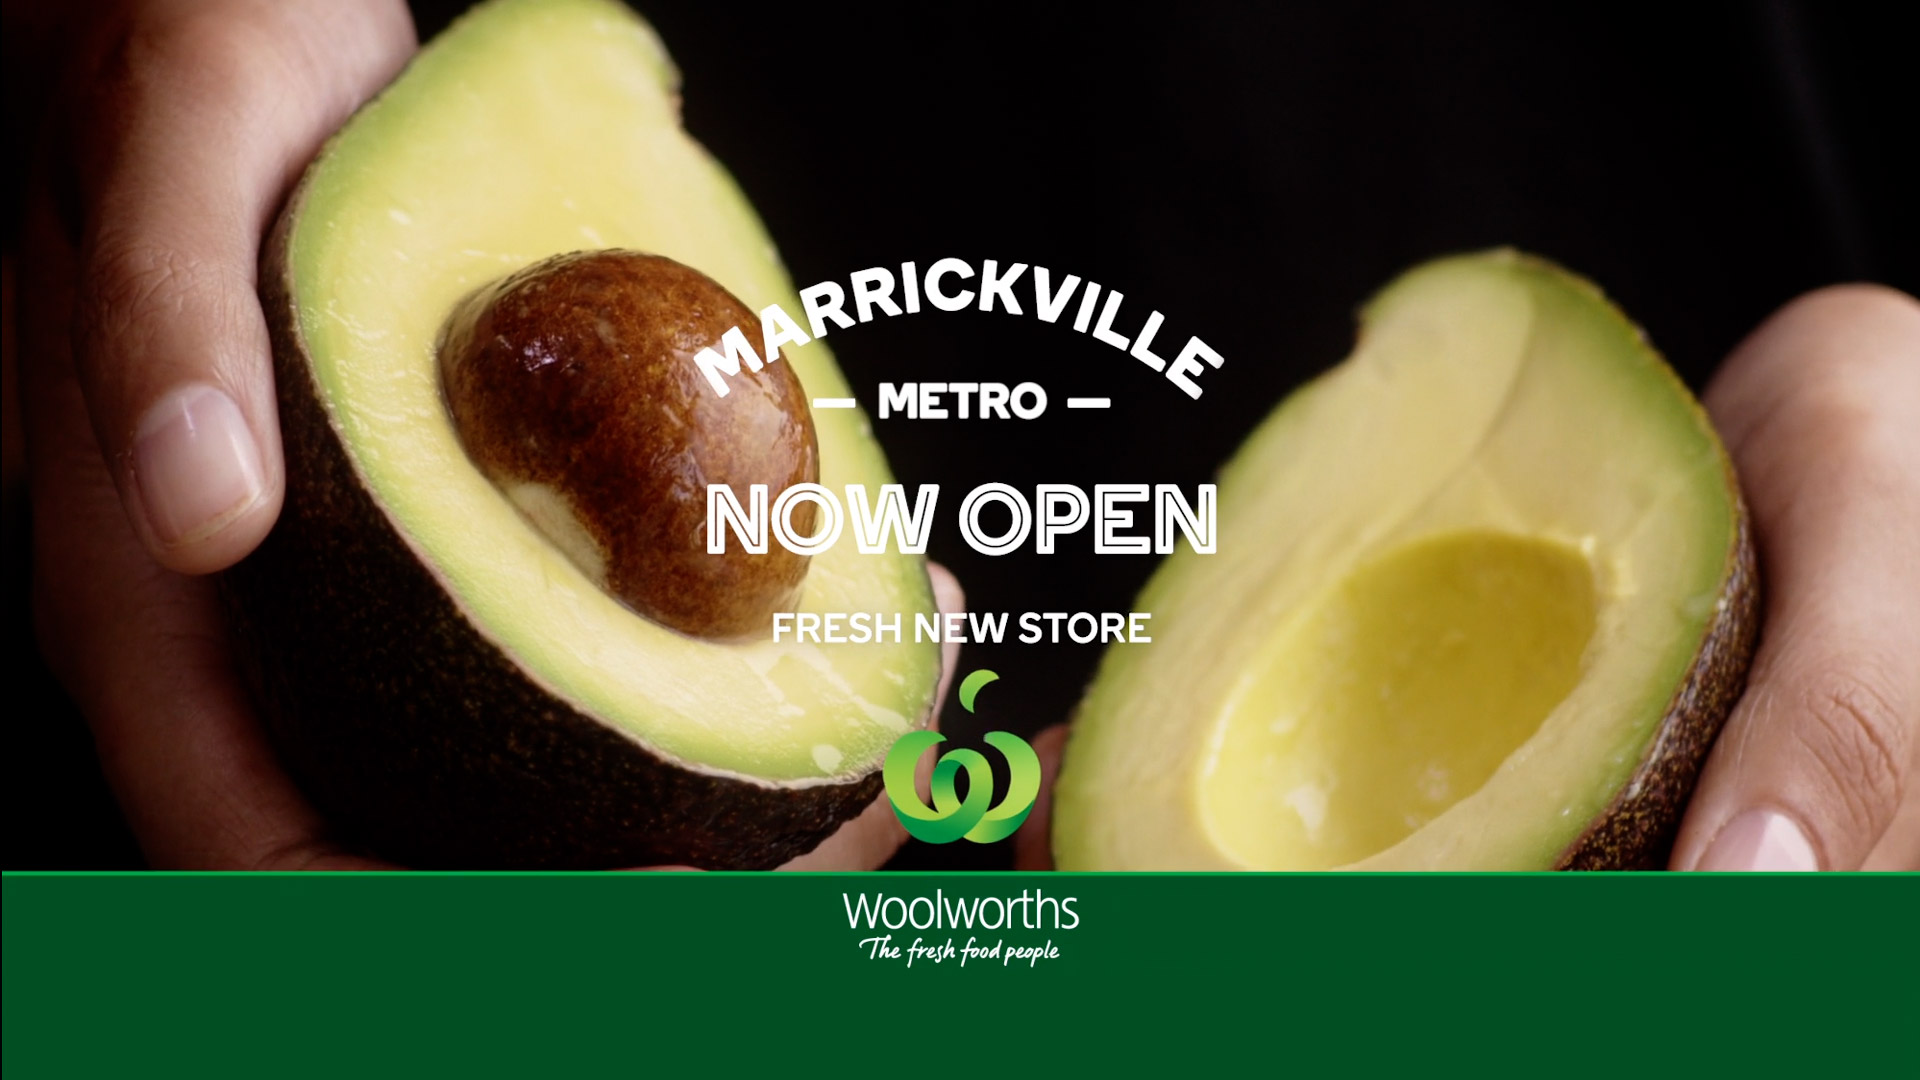 Woolworths---Marrickville-Metro-Launch_004.jpg